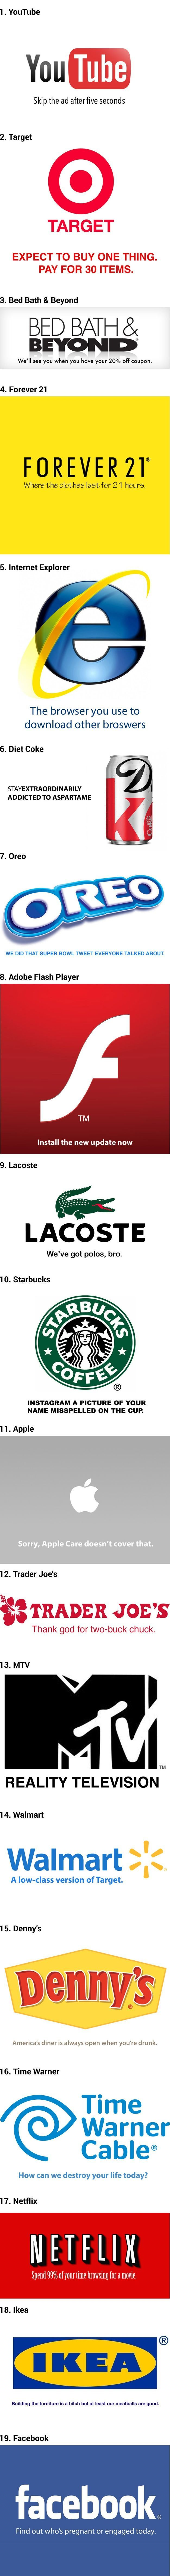 19 Honest Company Slogans You Might Agree With